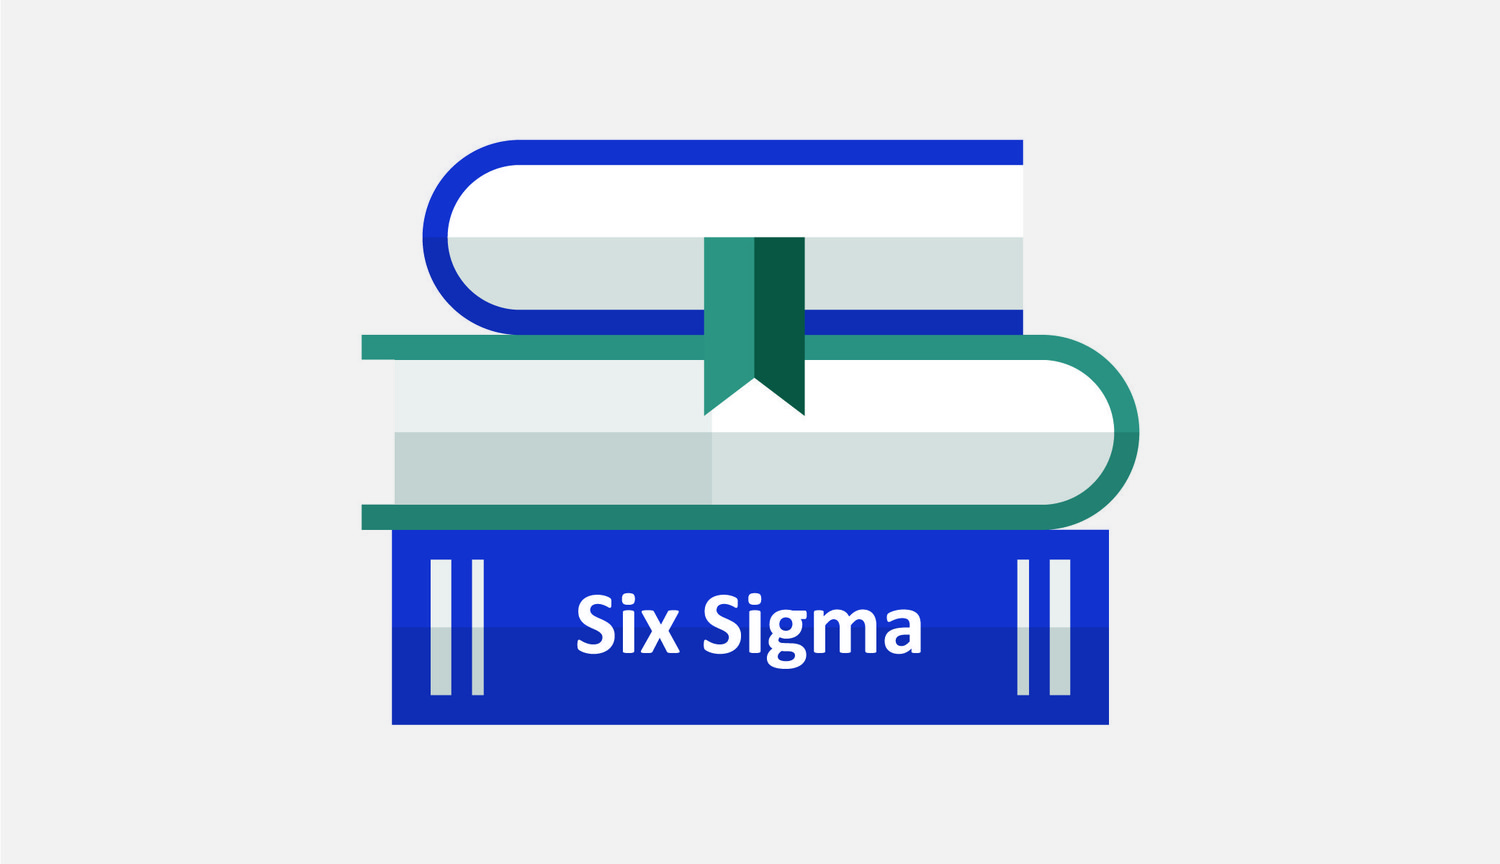 Lean Six Sigma Yellow Belt | SkillSolve Training